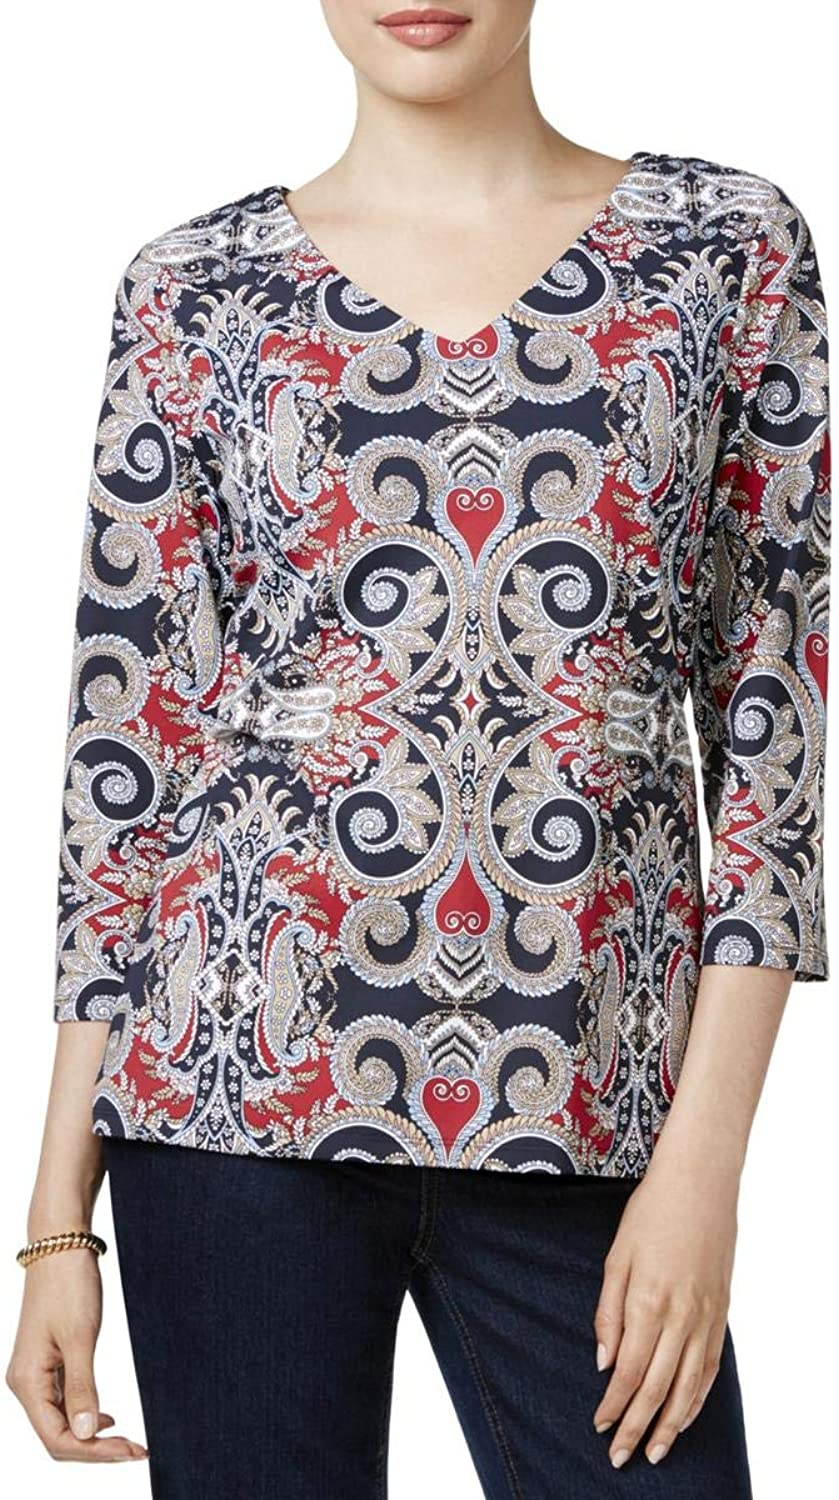 Charter Club Womens Petites Office Wear Professional Blouse